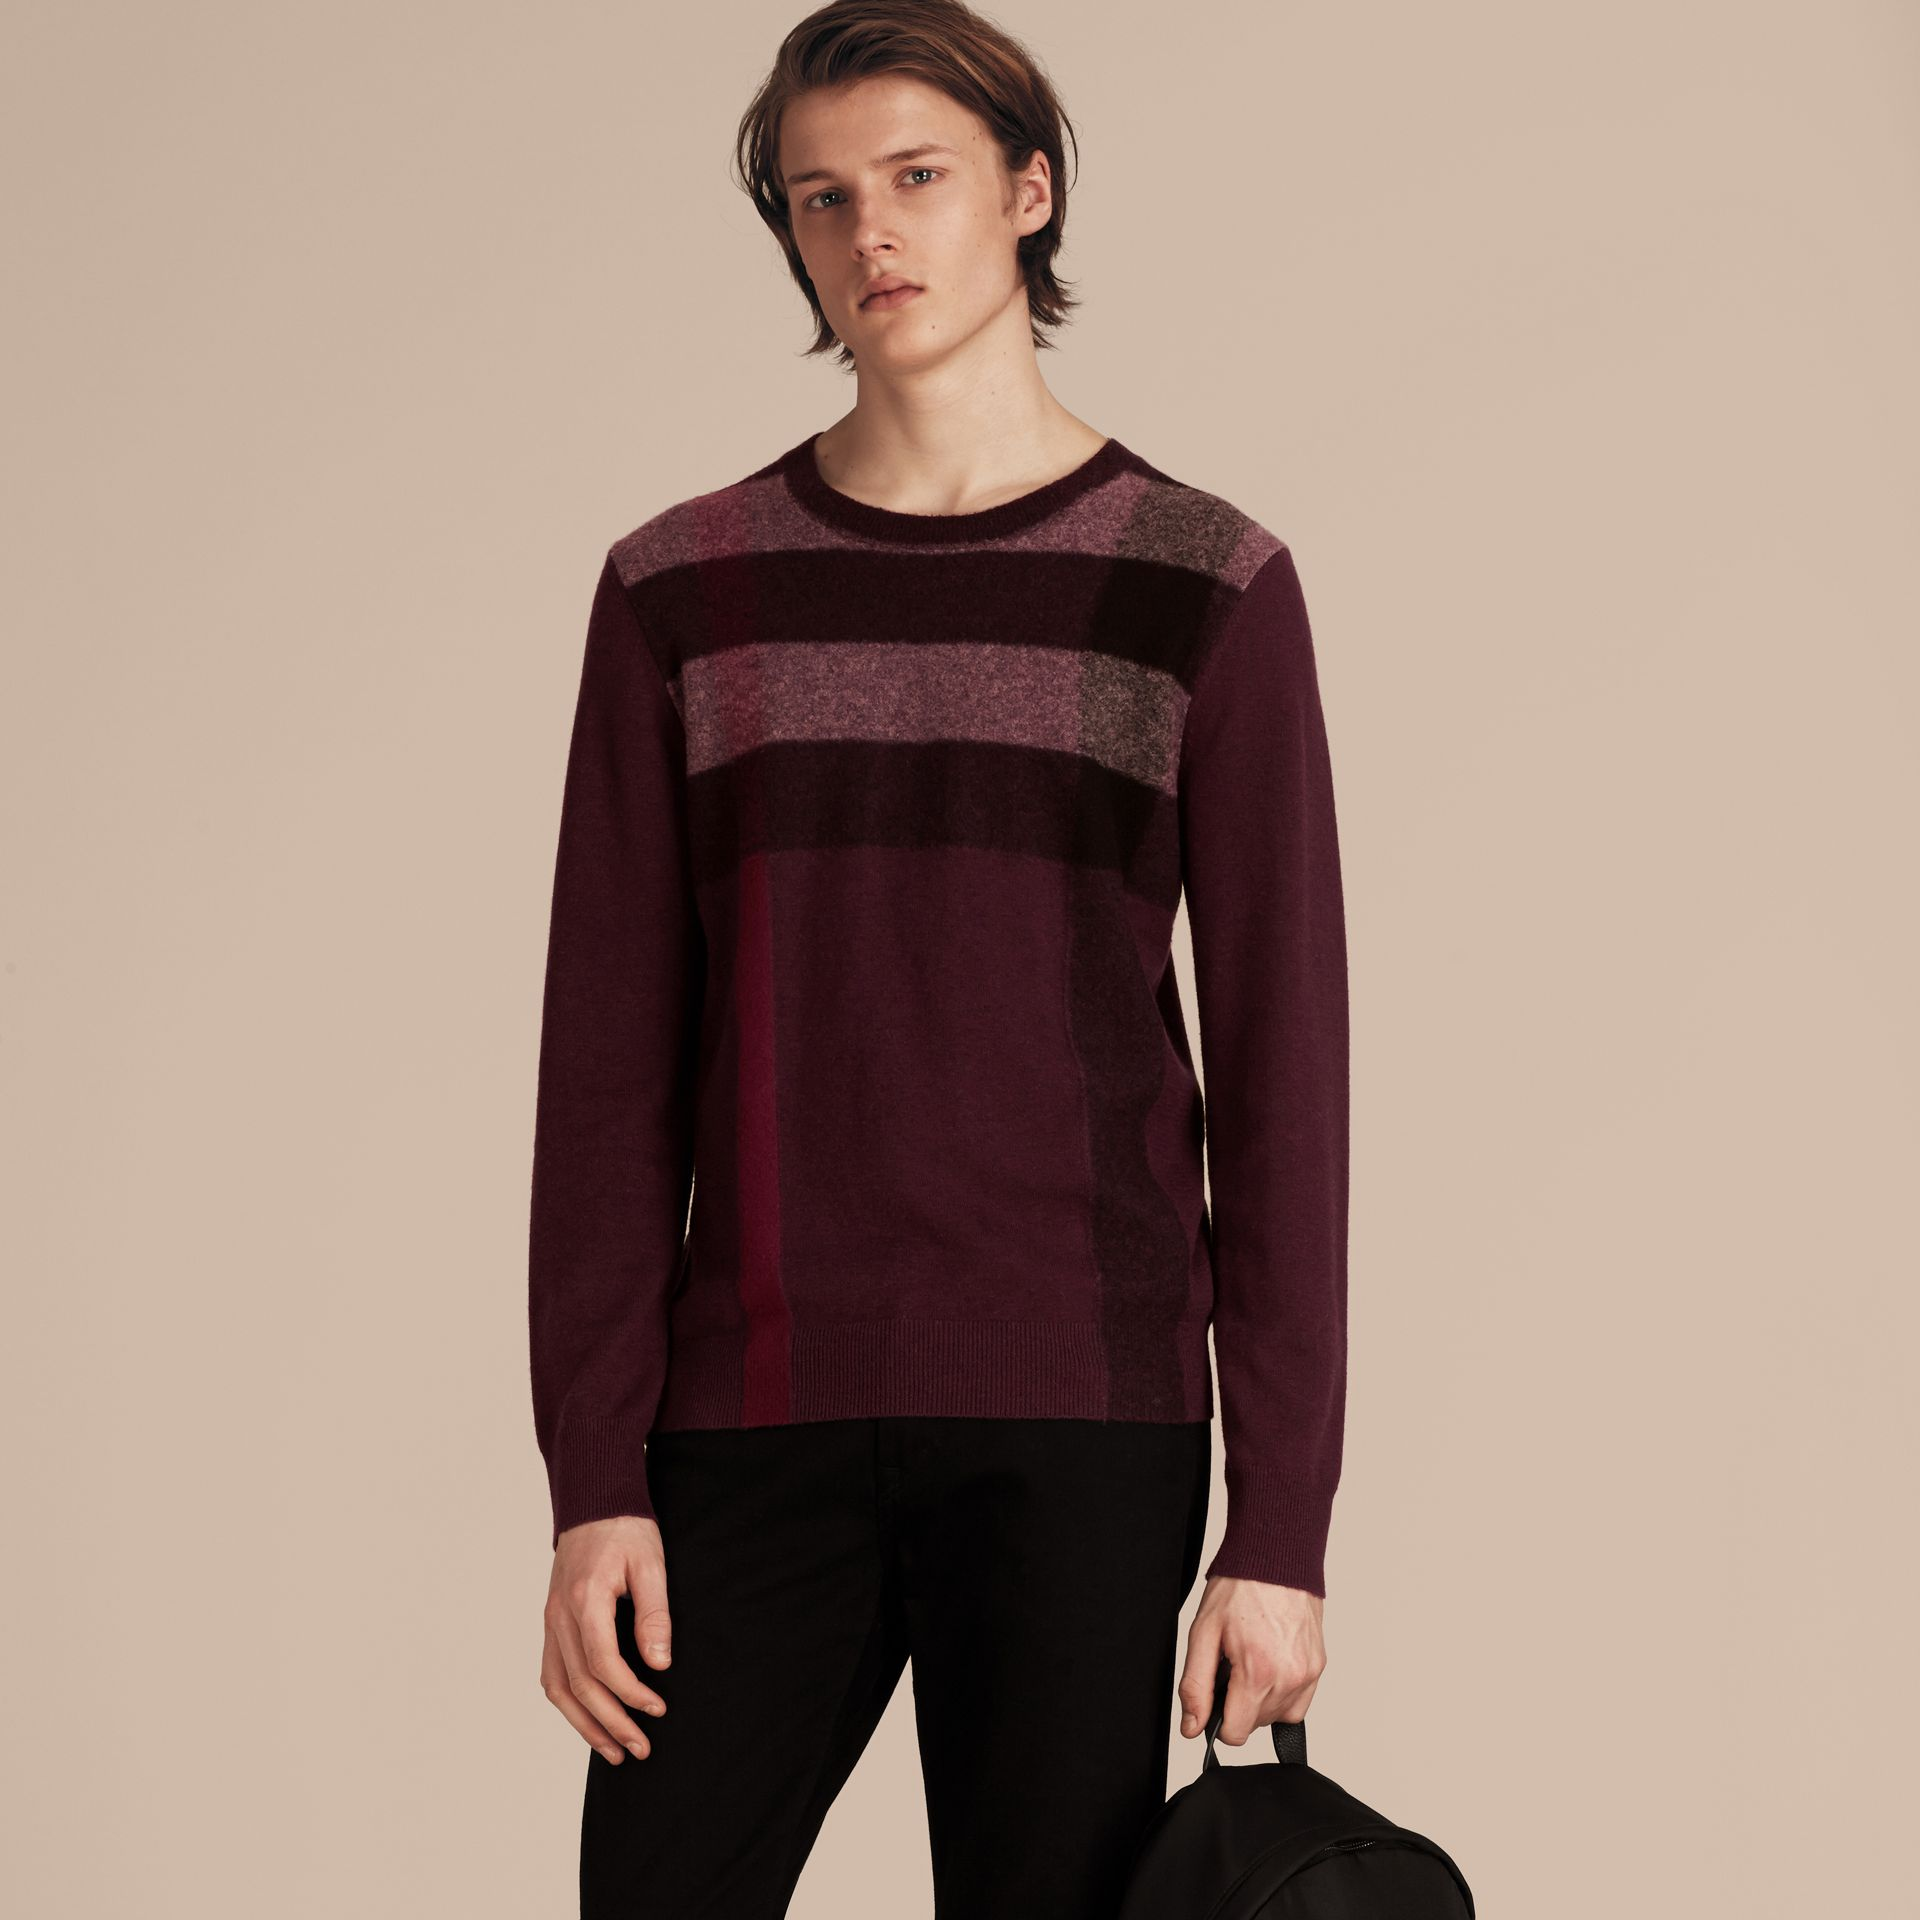 Burgundy red Graphic Check Cashmere Cotton Sweater Burgundy Red - gallery image 6